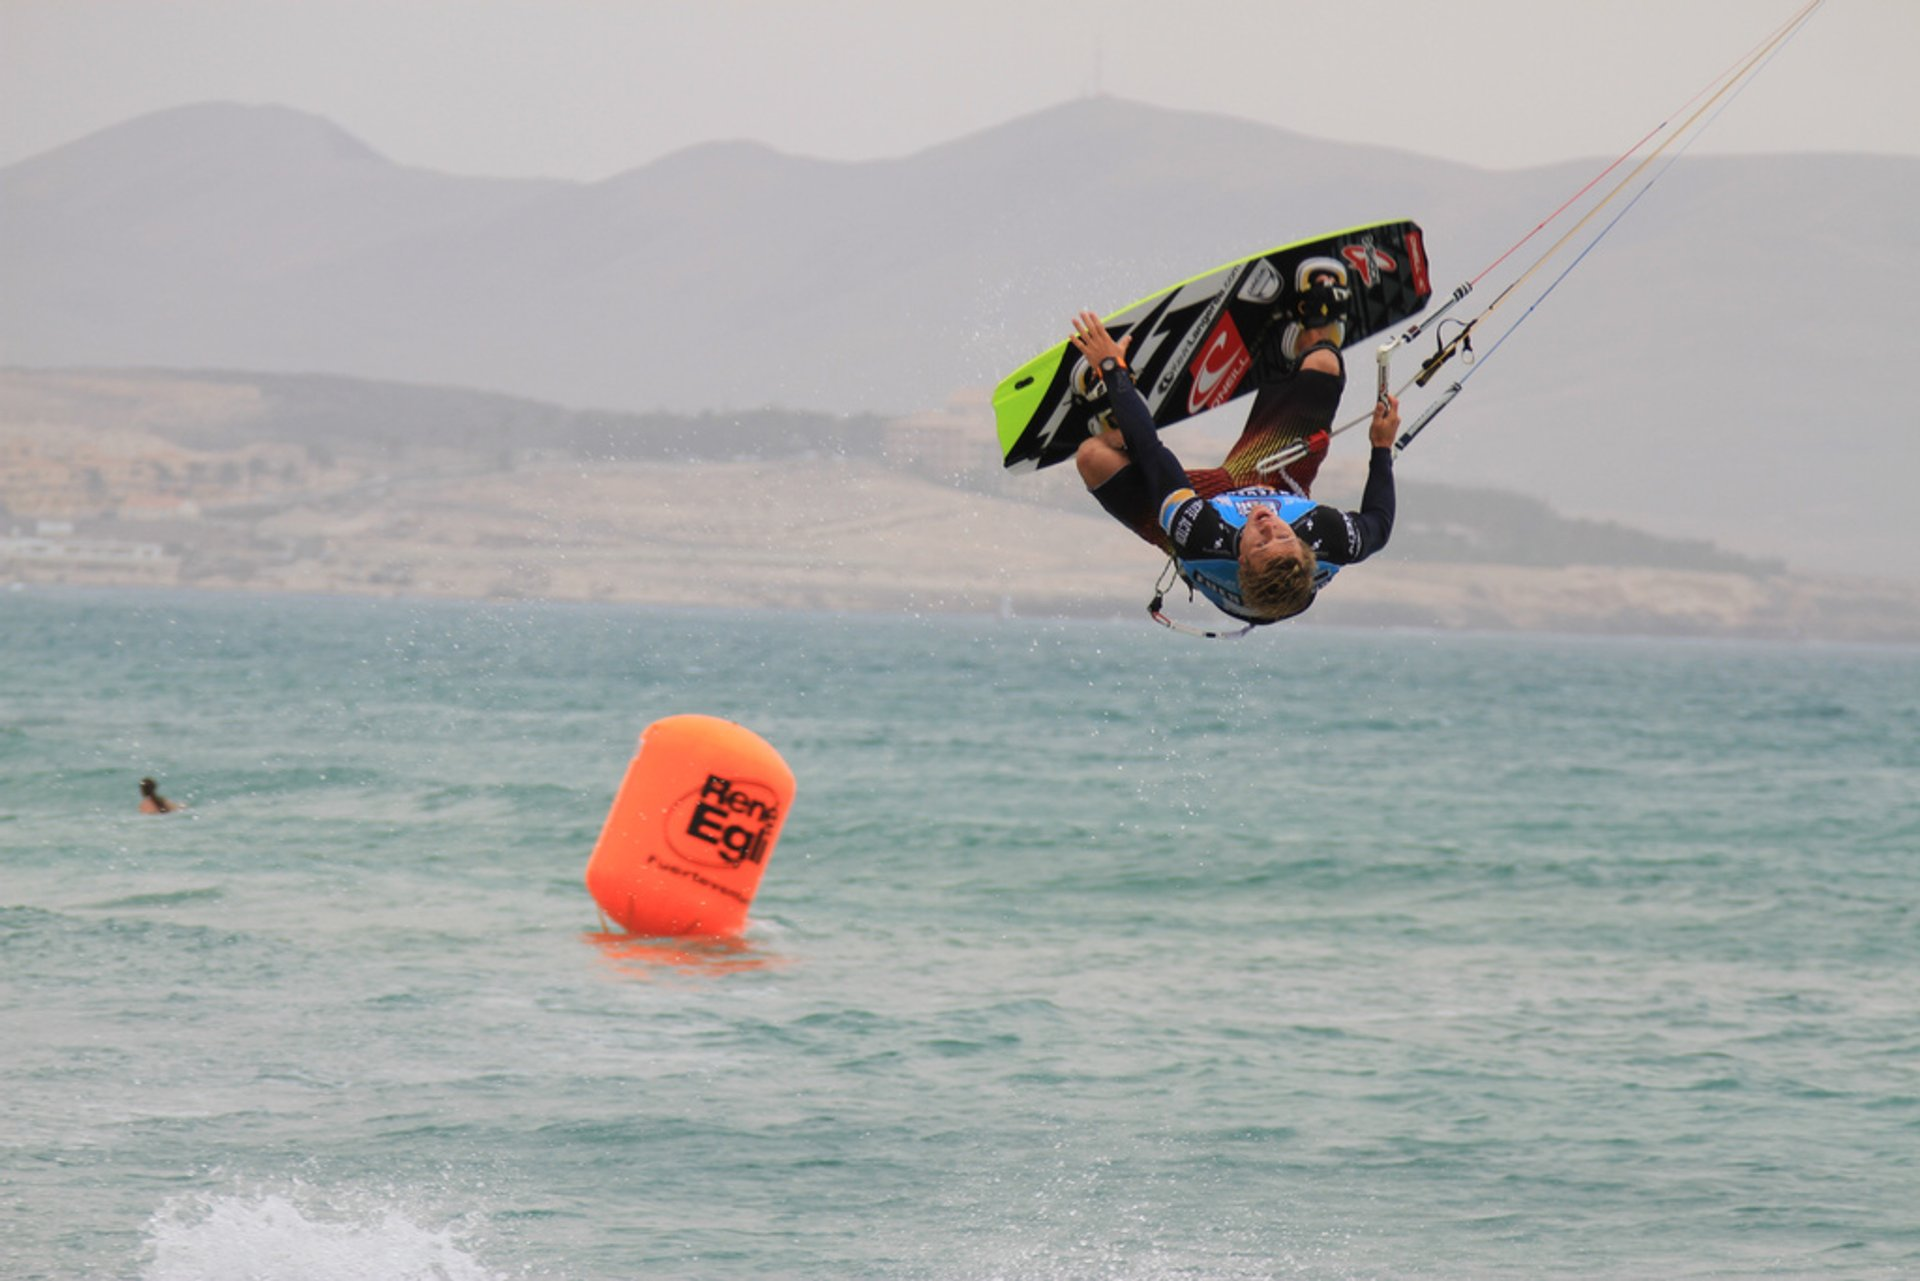 Fuerteventura Windsurfing & Kitesurfing World Cup in Canary Islands 2019 - Best Time